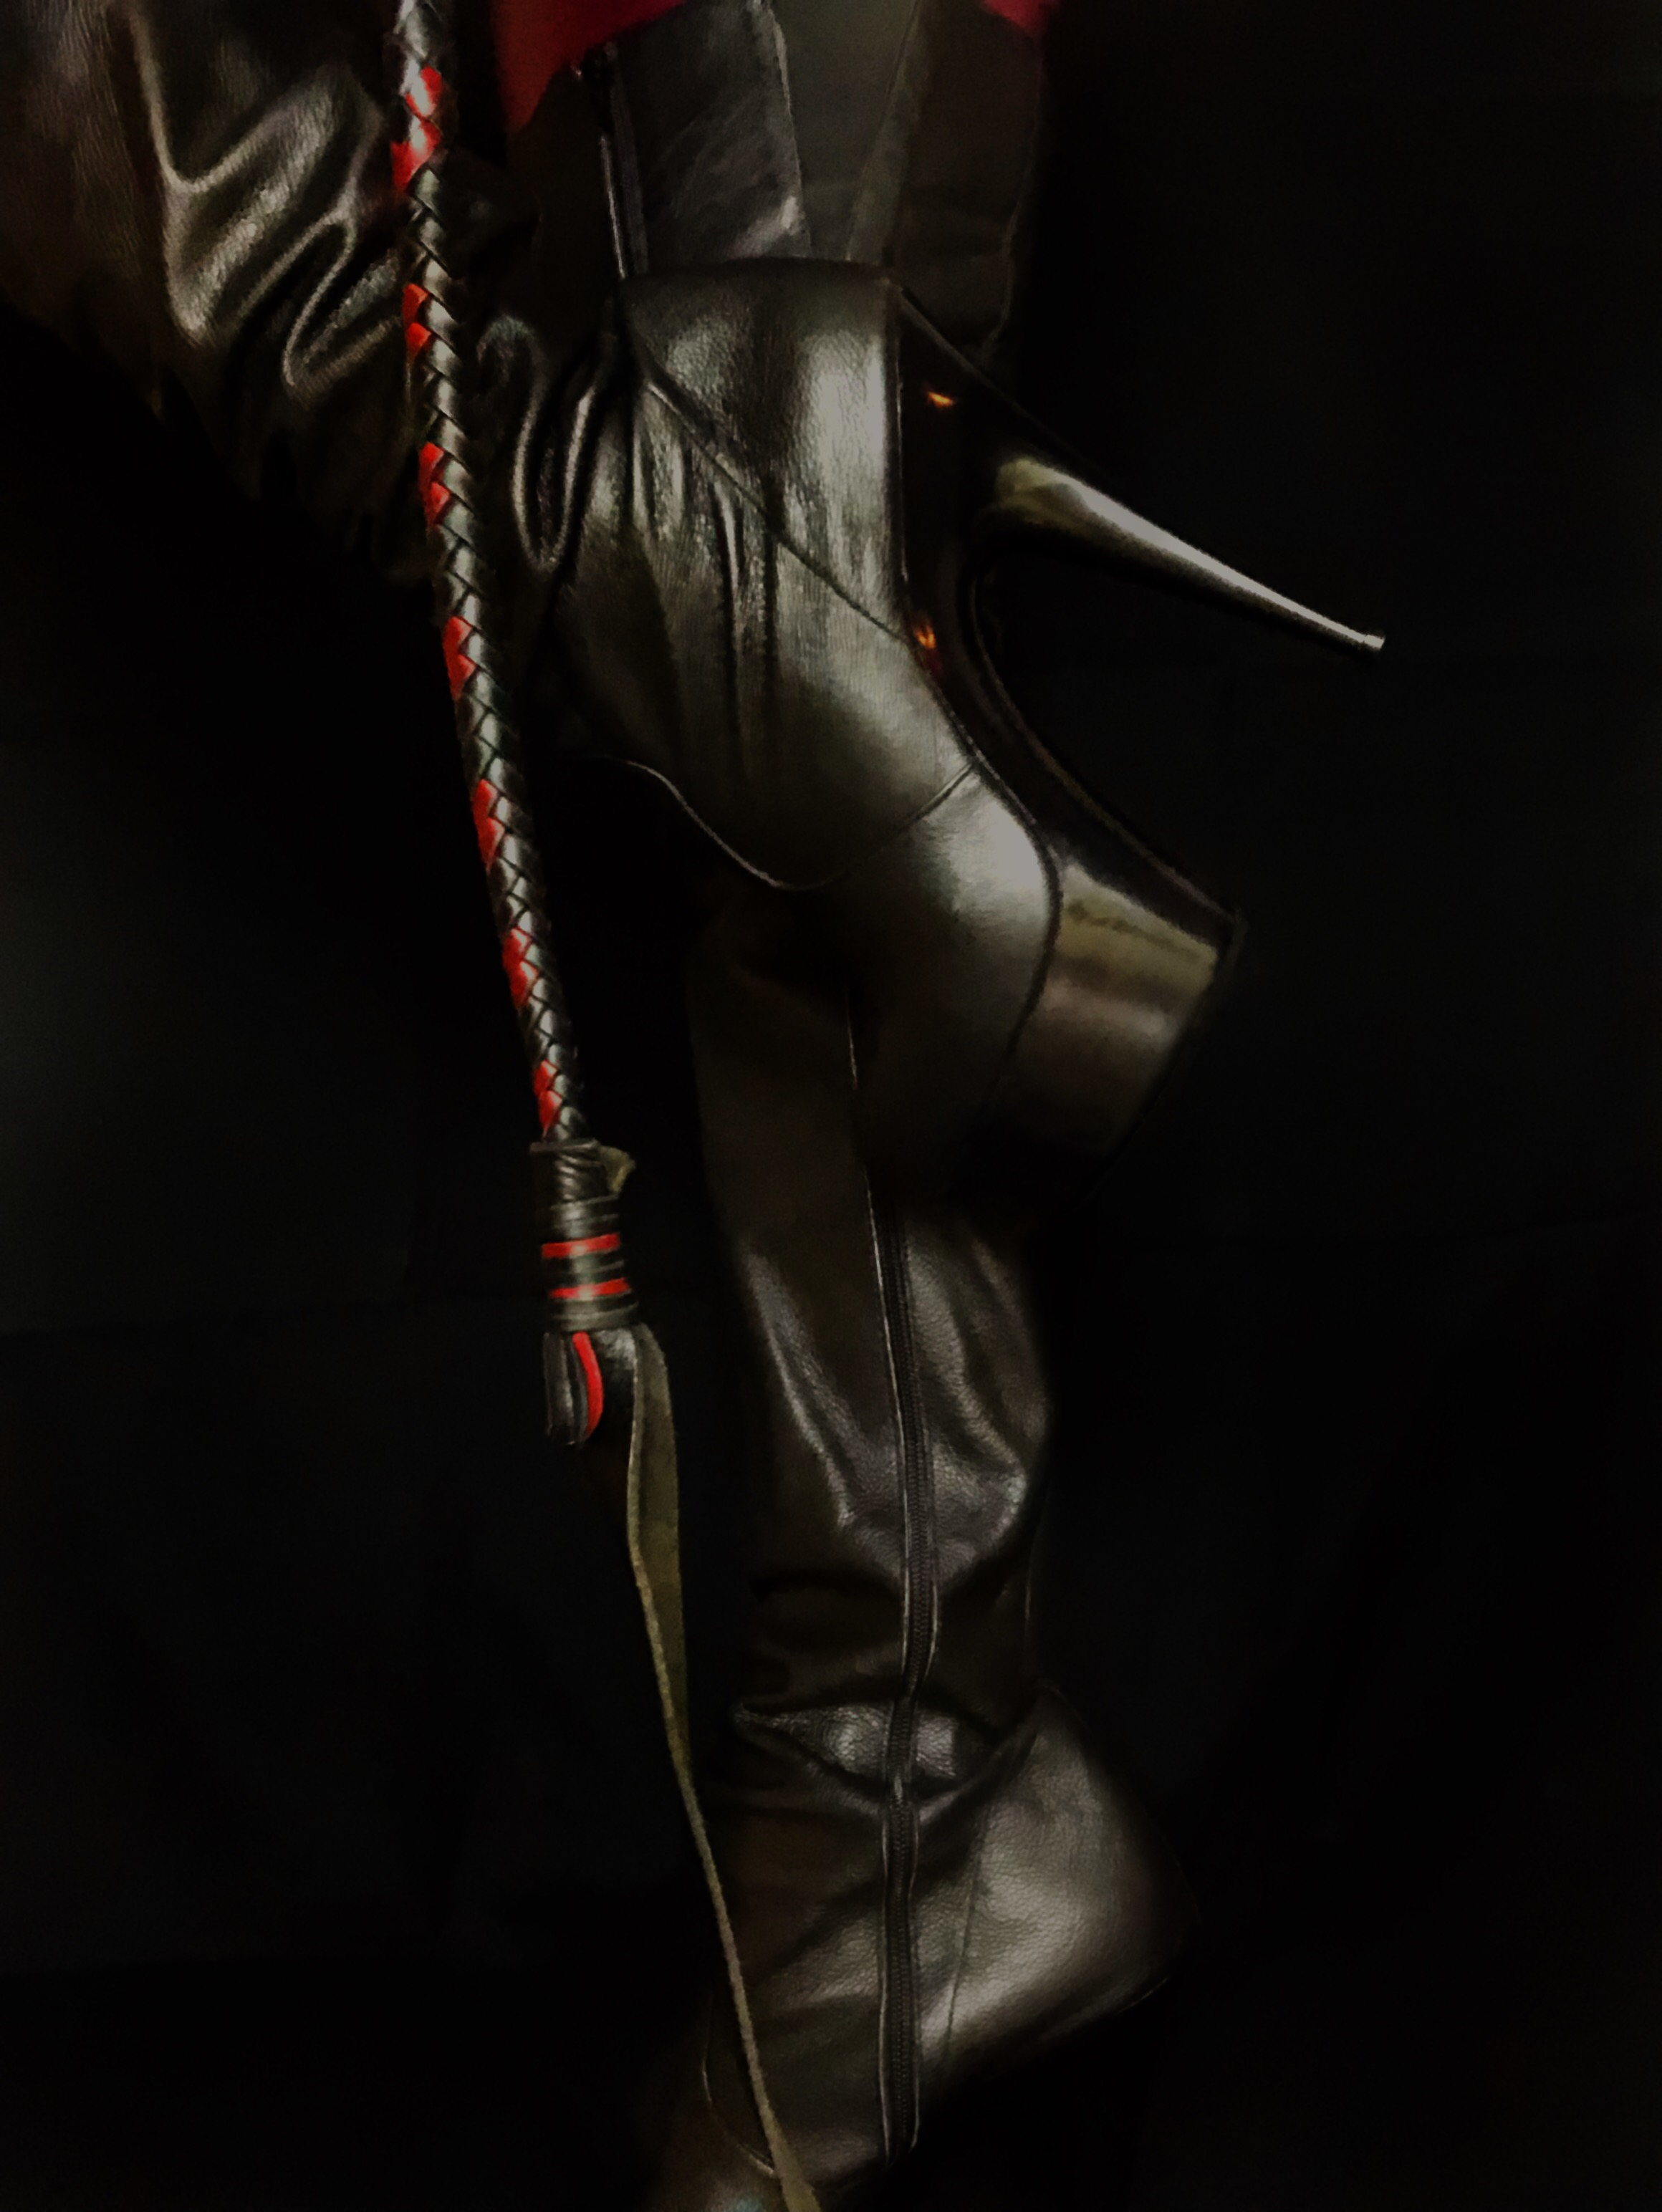 leather boots, leather worship, thigh high boots, whip, whipping, Chicago dominatrix